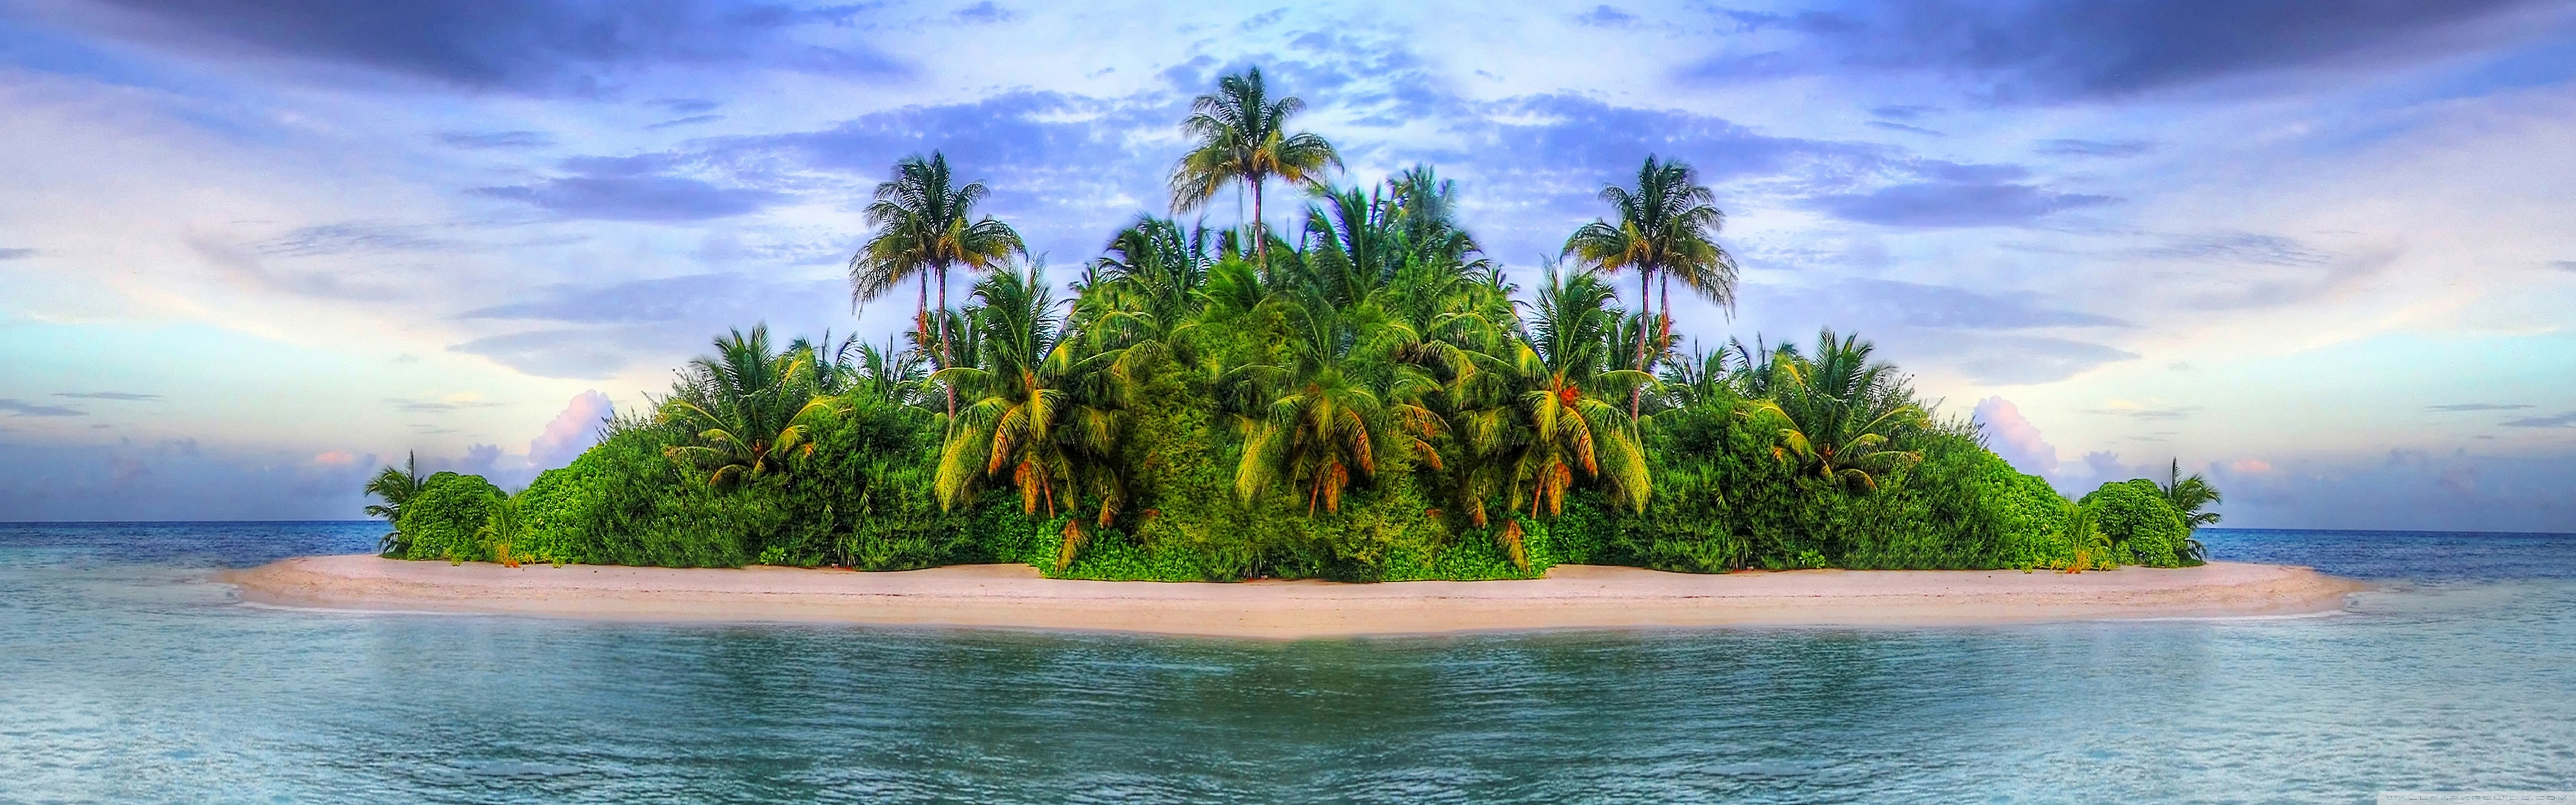 Tropical Island 4K HD Desktop Wallpaper for 4K Ultra HD TV 5120x1600